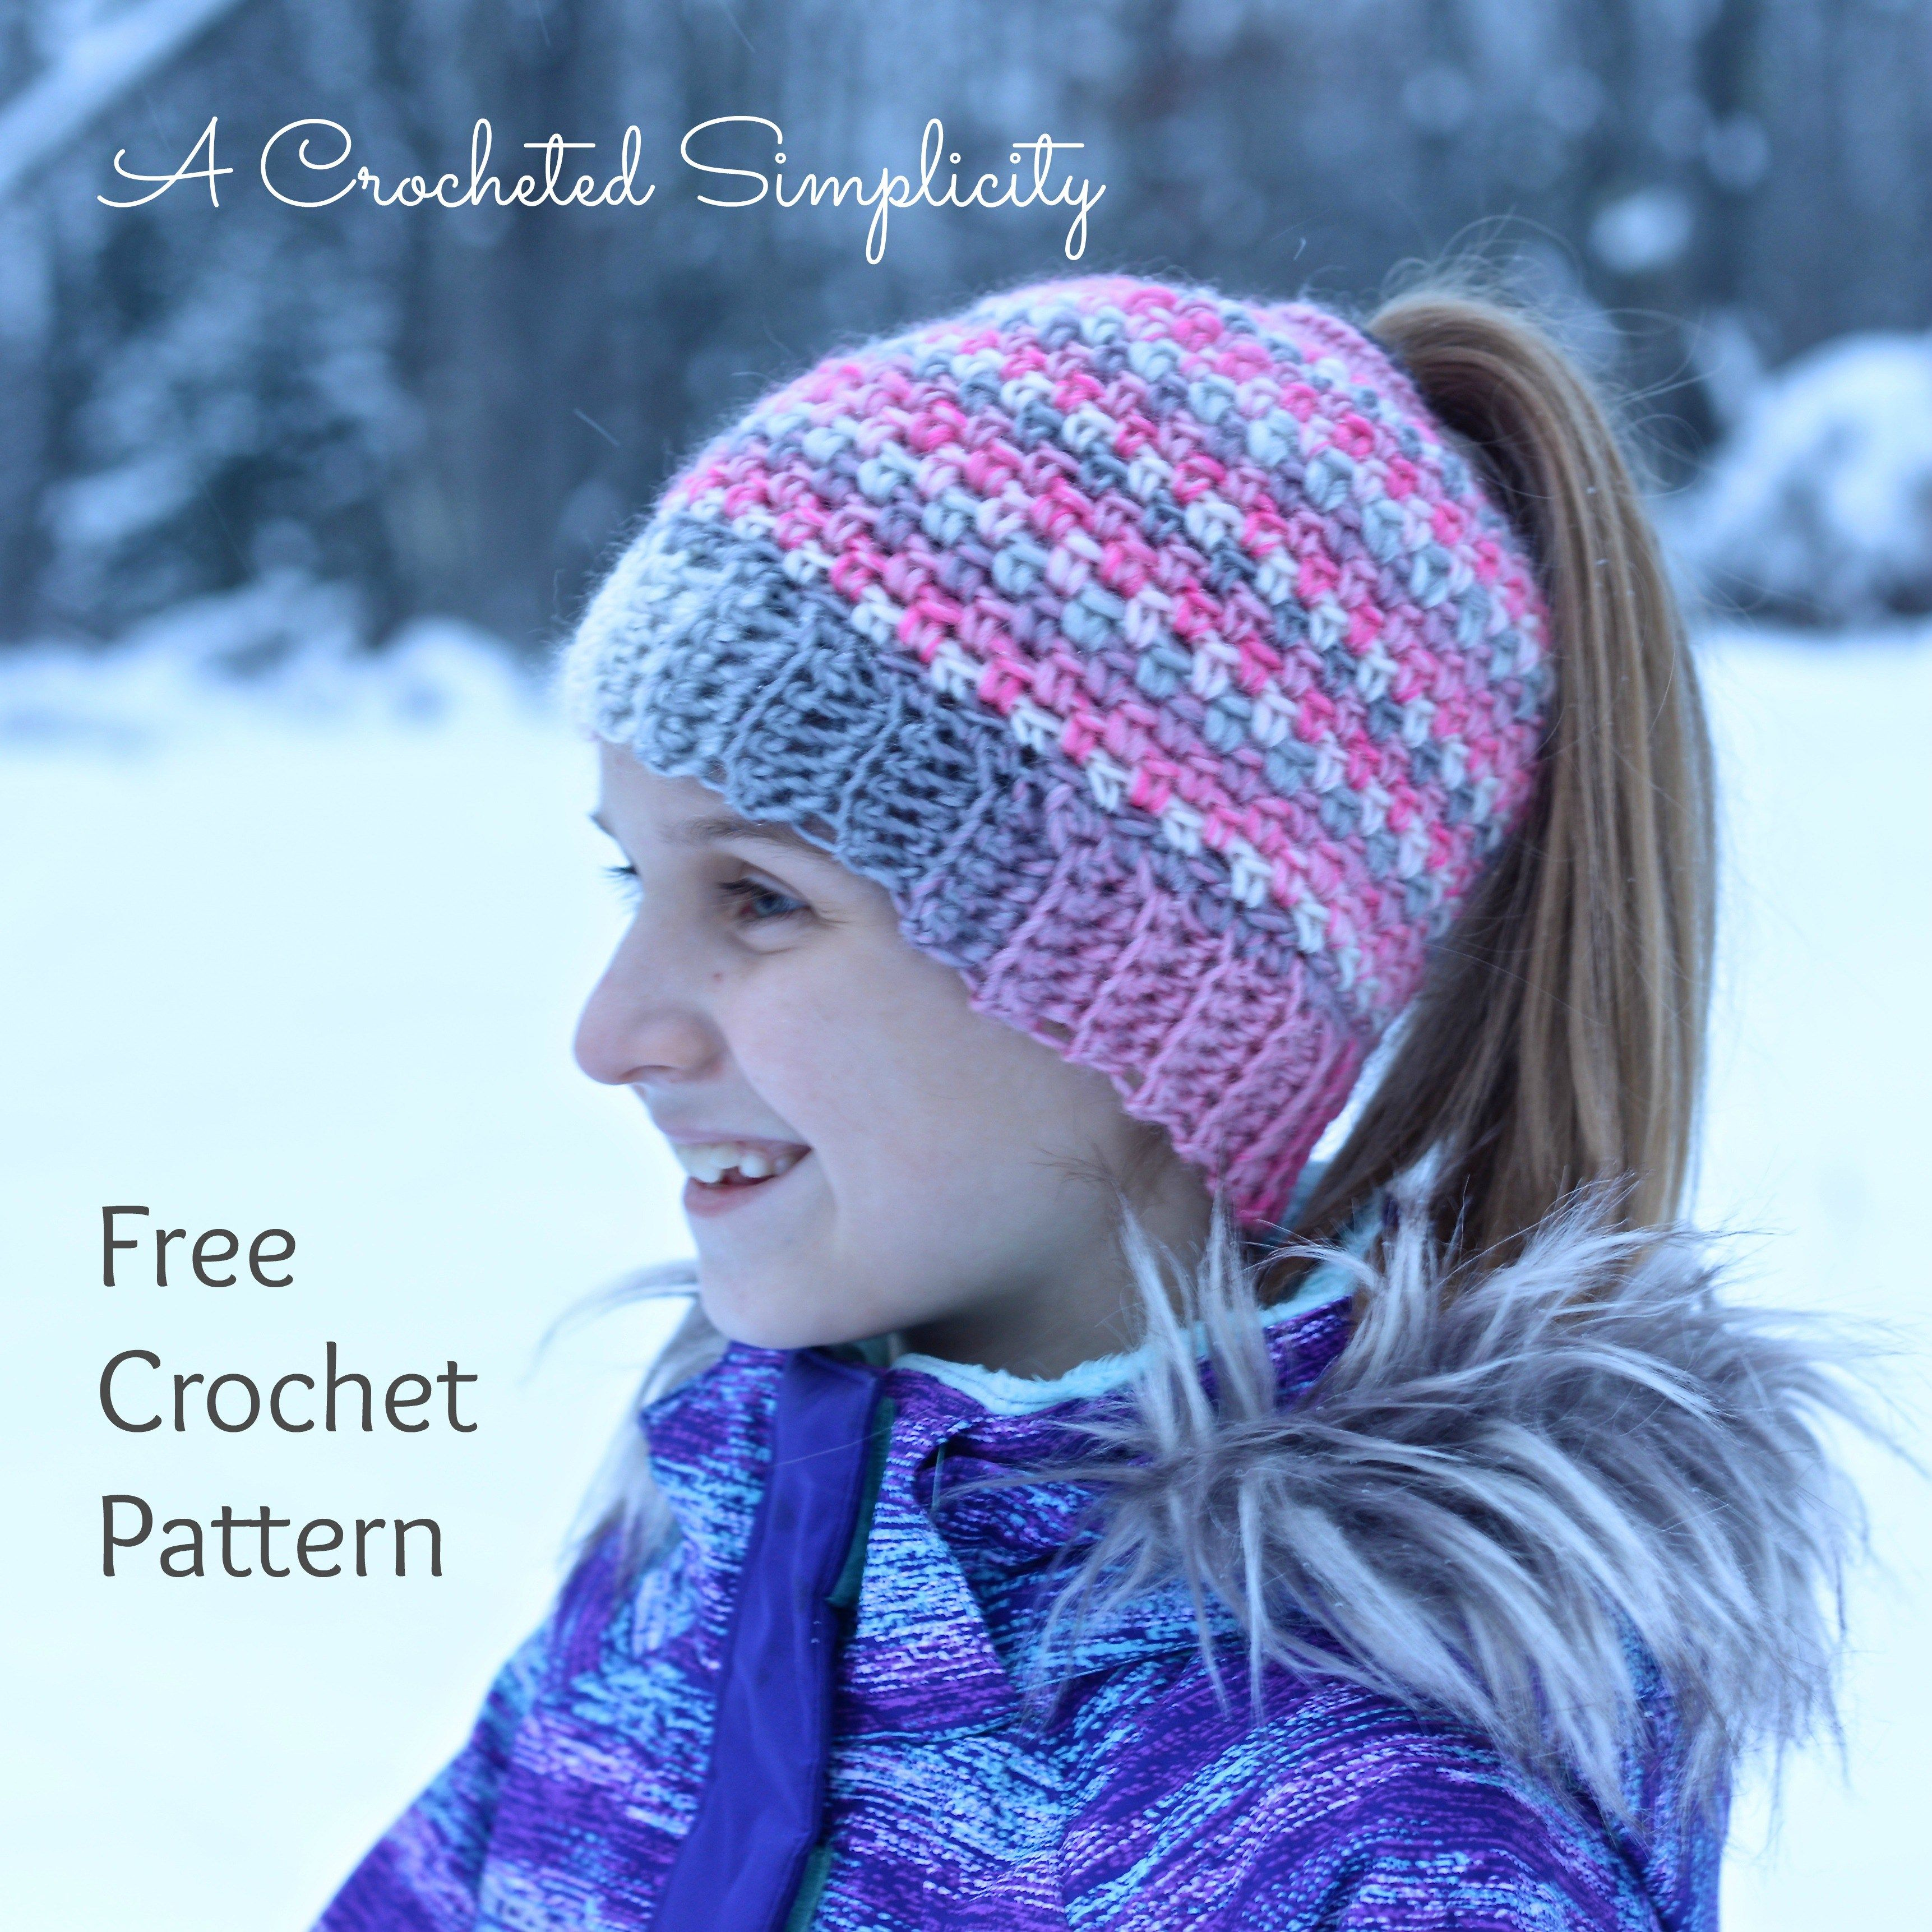 Messy bun crochet hat free patterns linen stitch messy buns and messy bun crochet hat free patterns bankloansurffo Choice Image